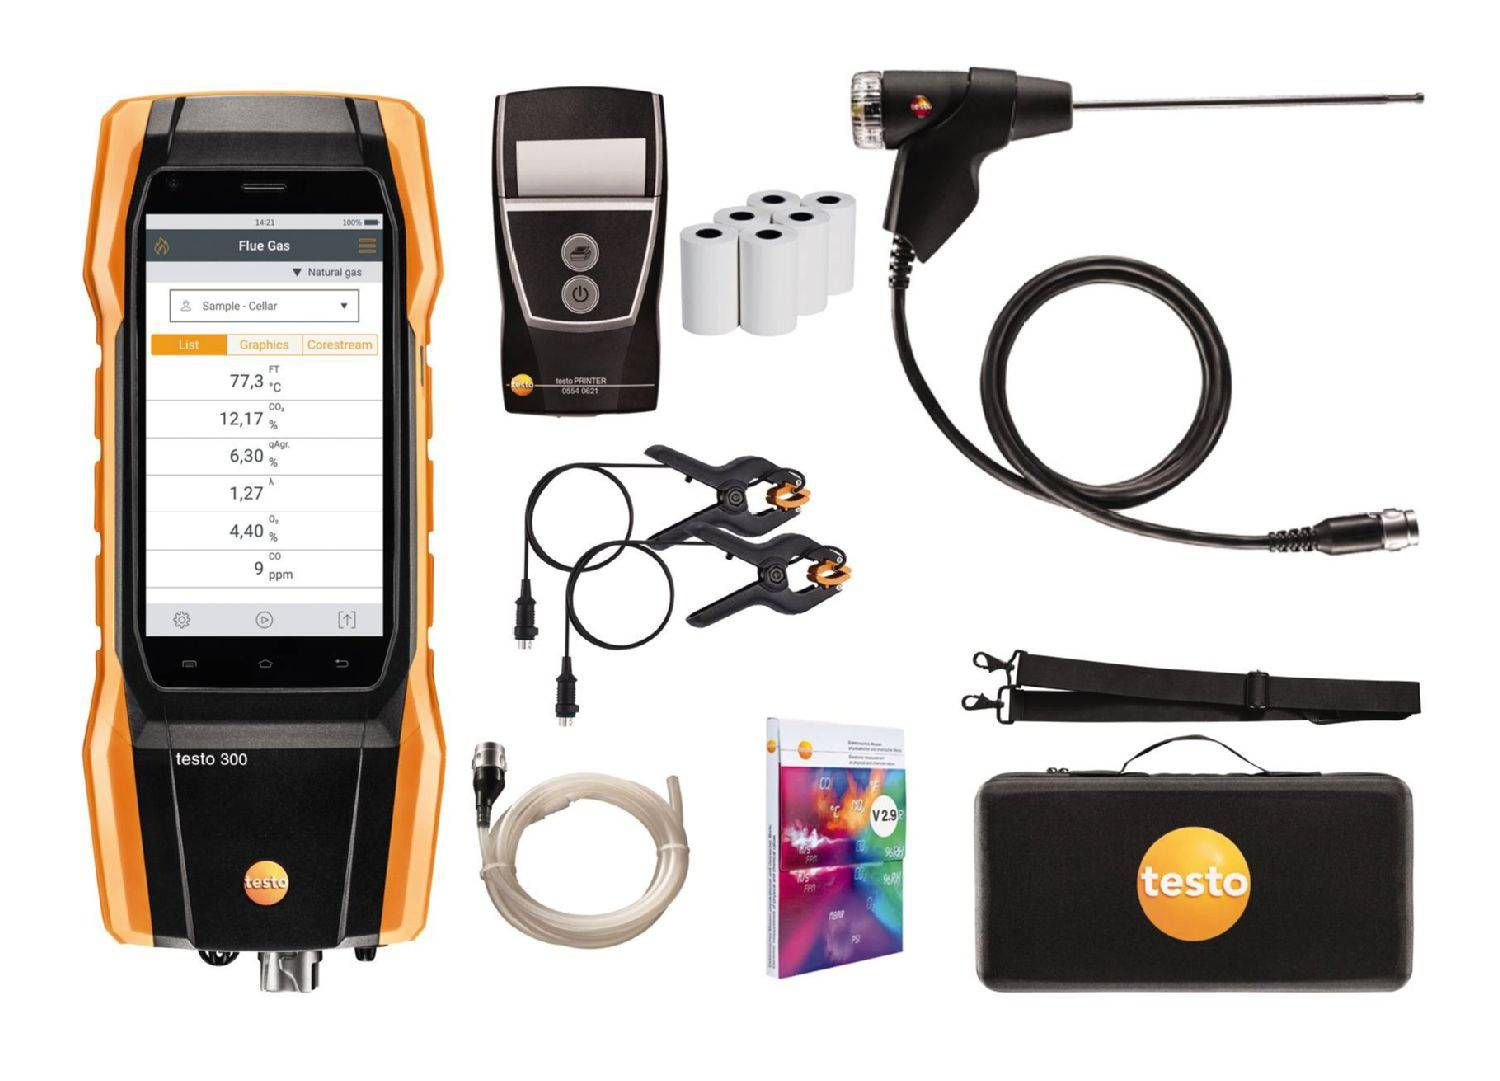 testo-300-advanced-kit-0564-3002-81.jpg